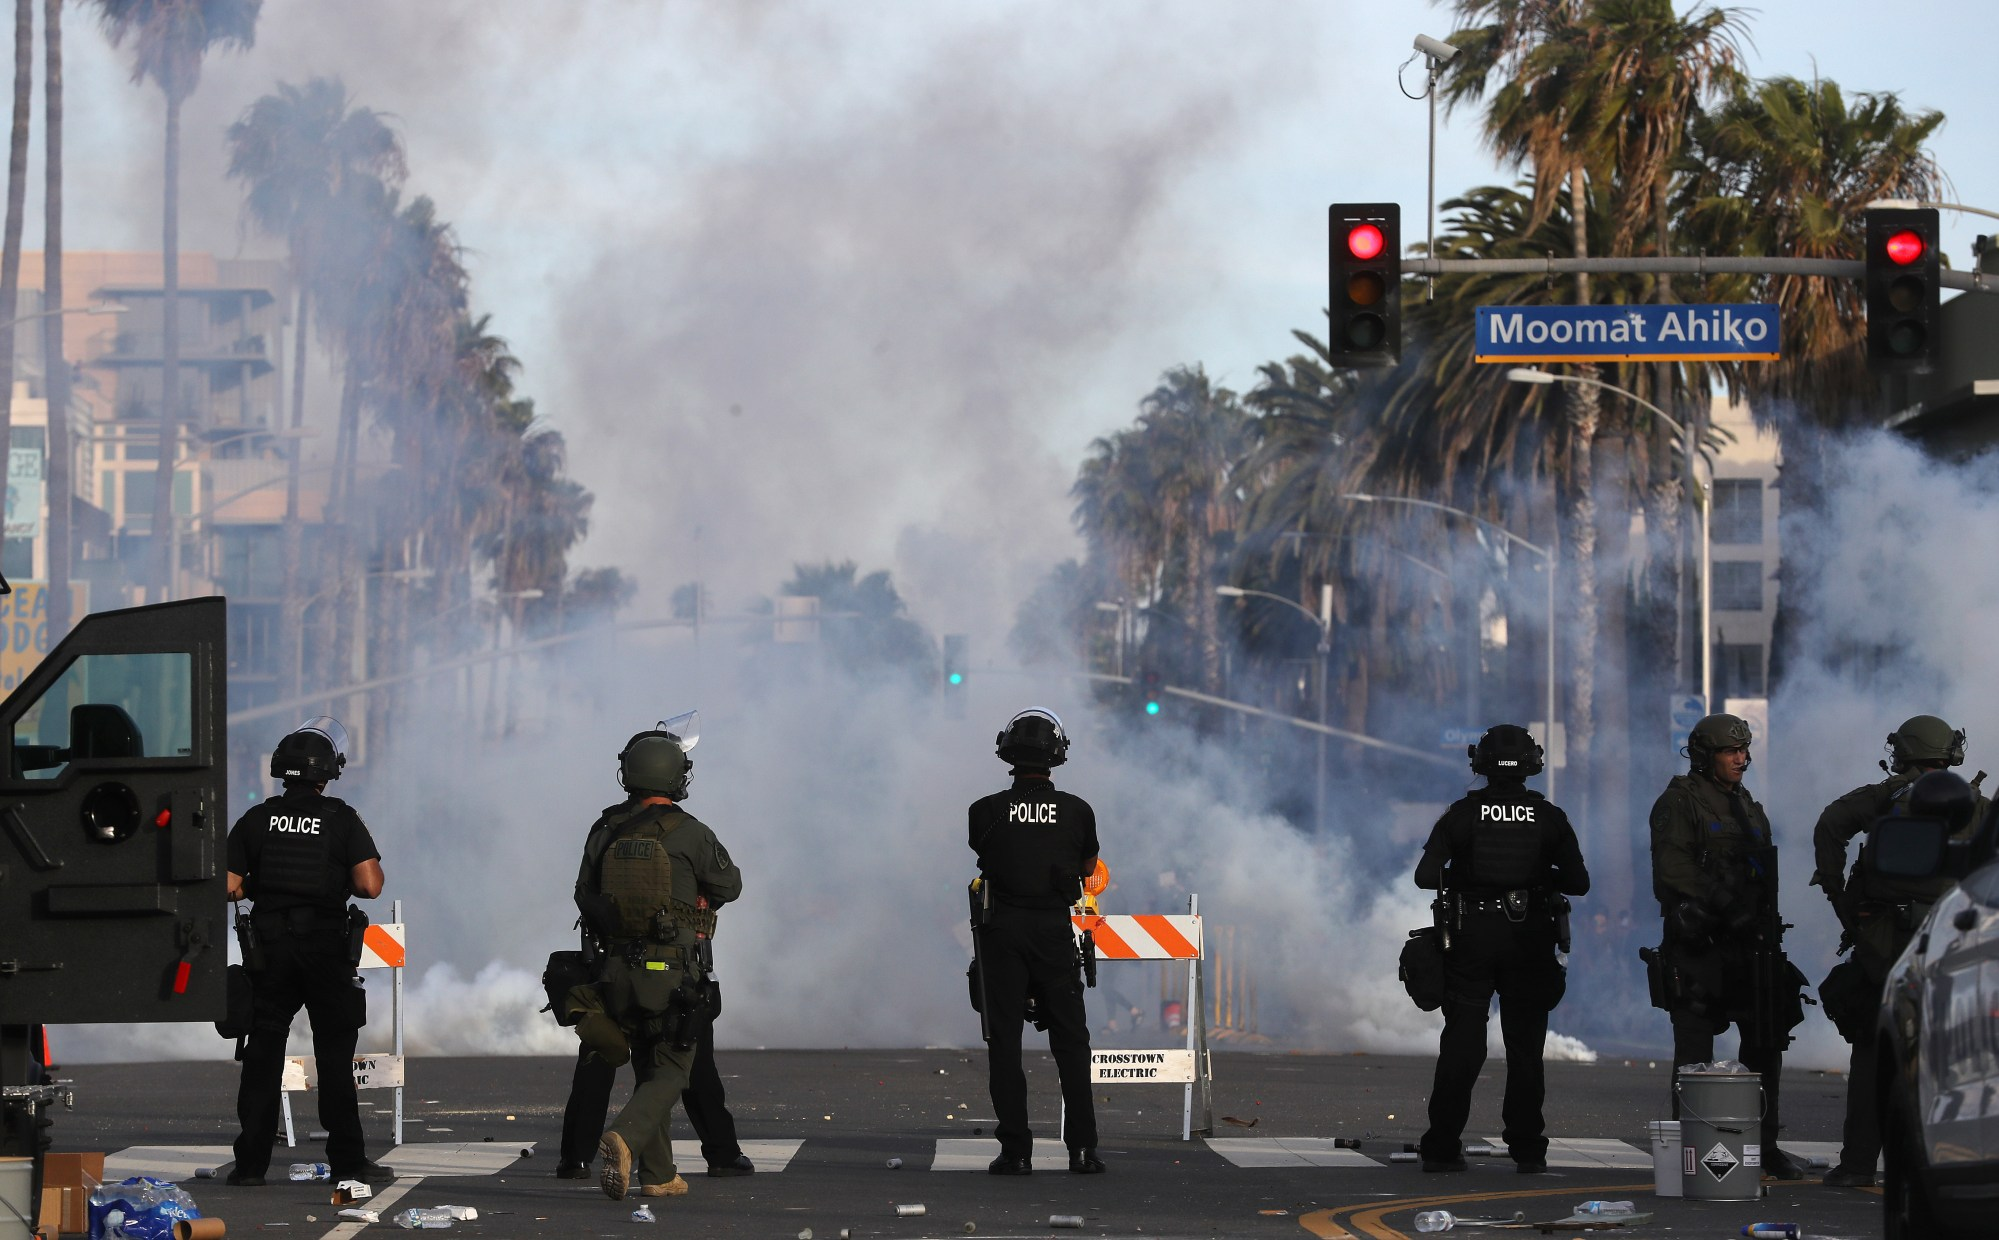 Police watch as tear gas is deployed during demonstrations in Santa Monica following the death of George Floyd on May 31, 2020.(Mario Tama/Getty Images)